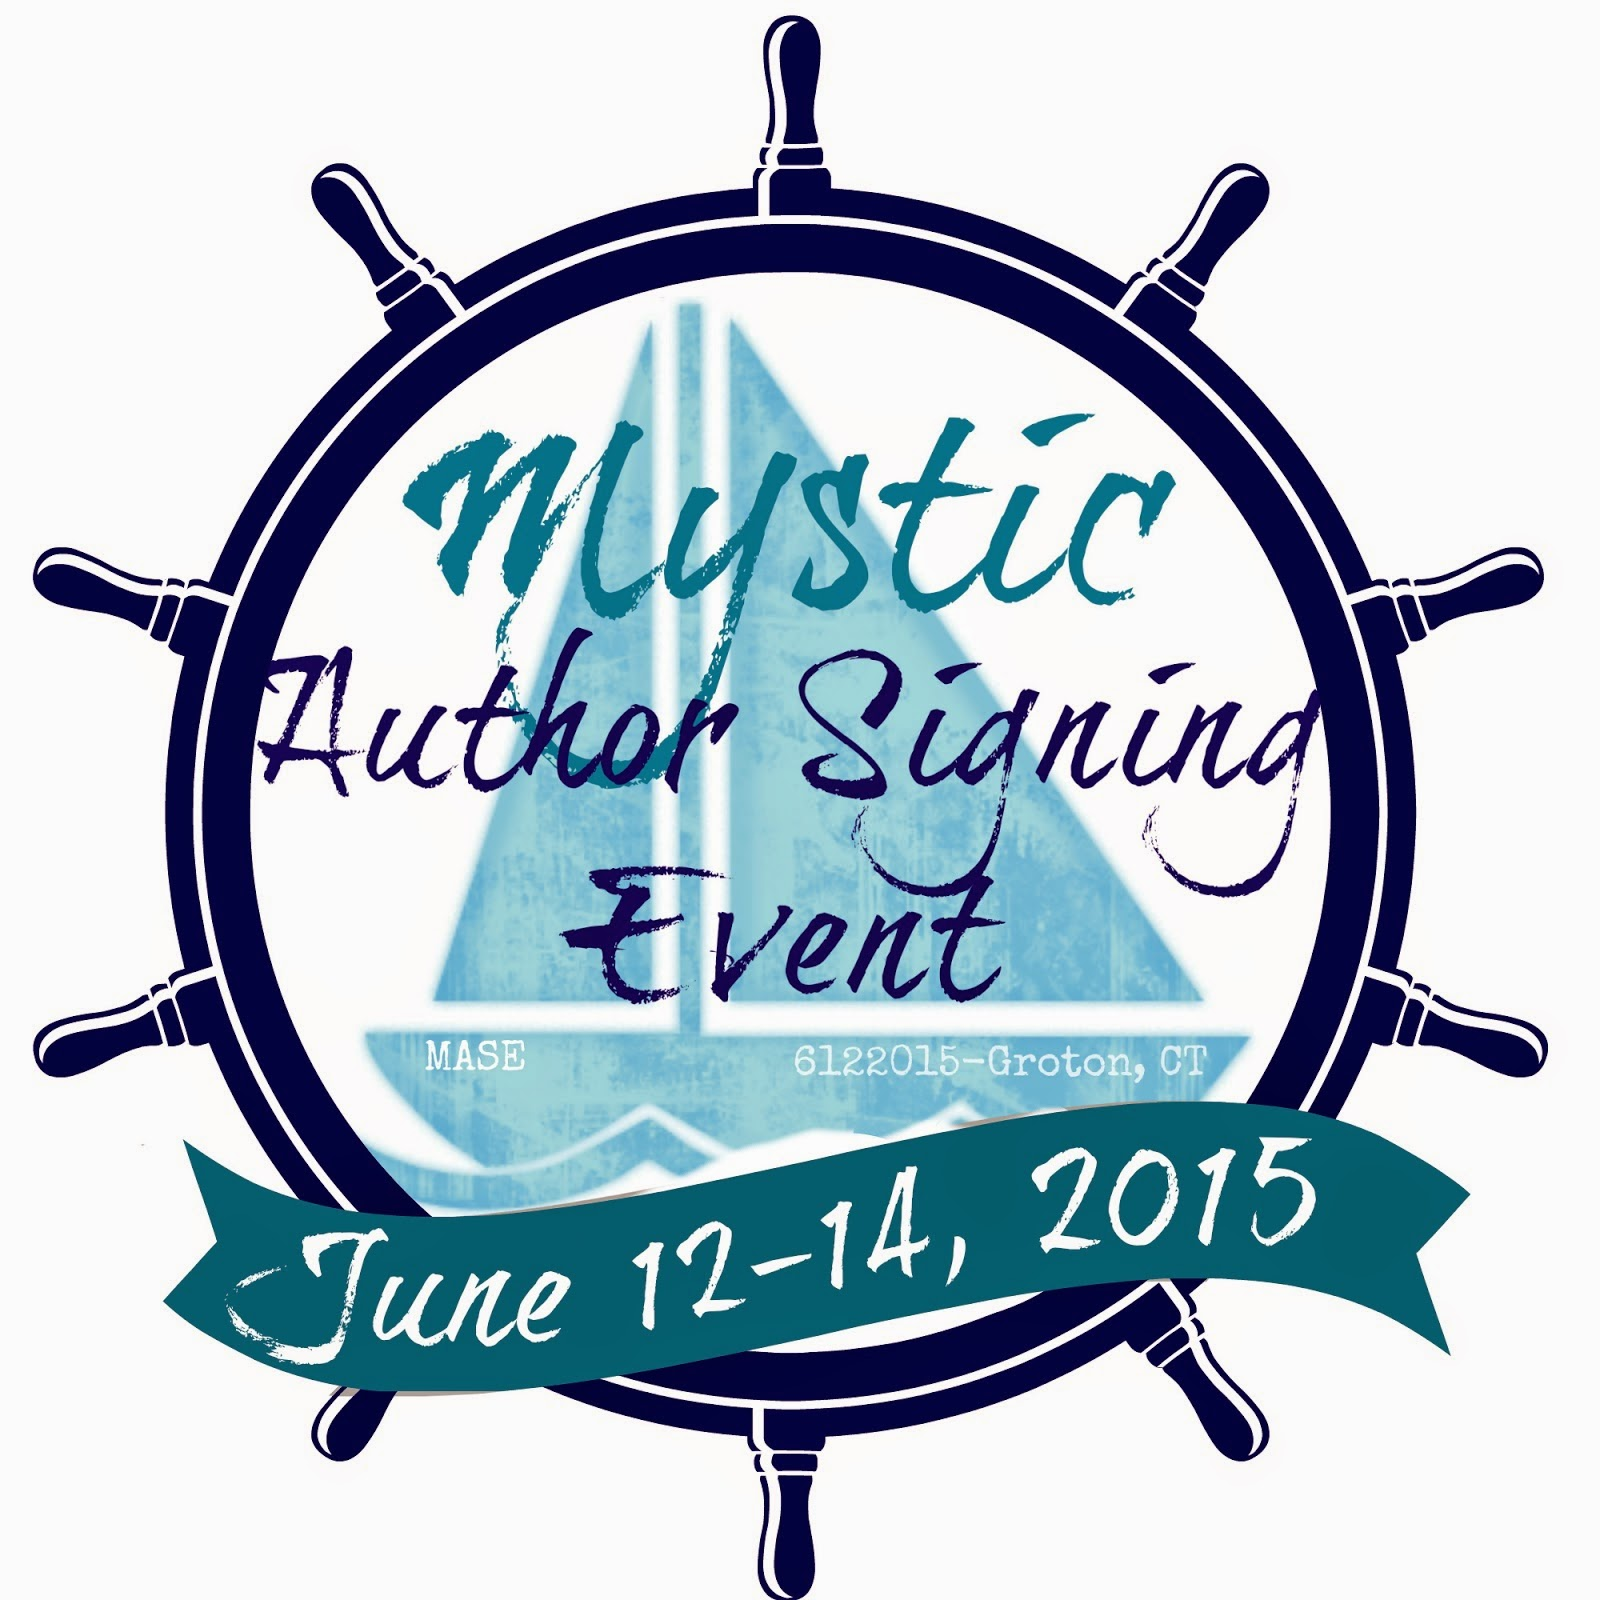 Mystic Author Signing Event